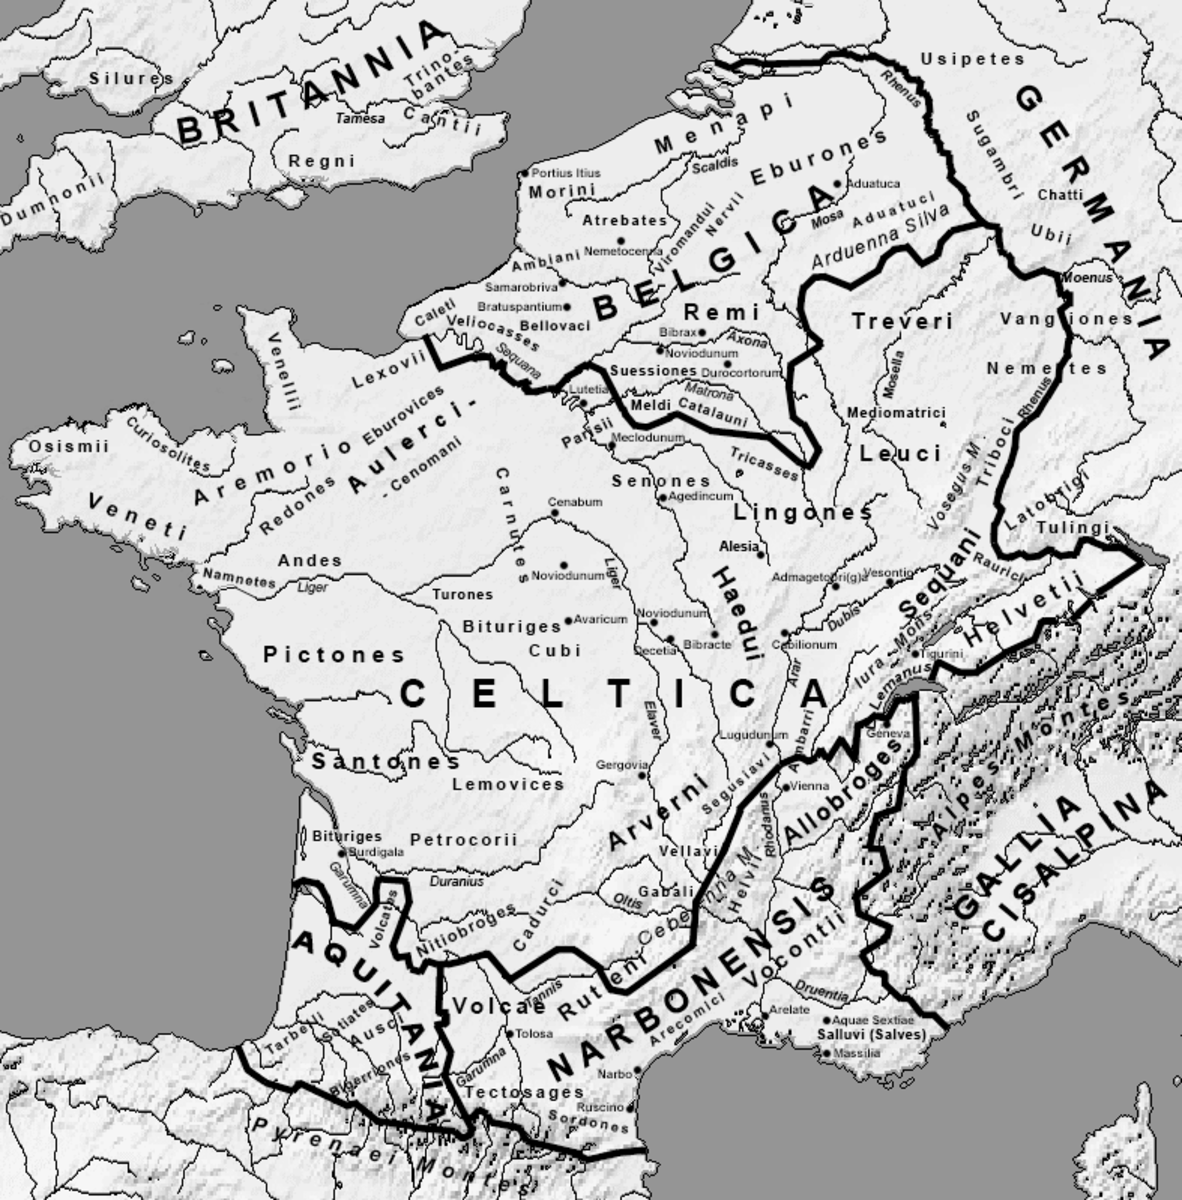 Gallic Tribes and Towns in Western Europe